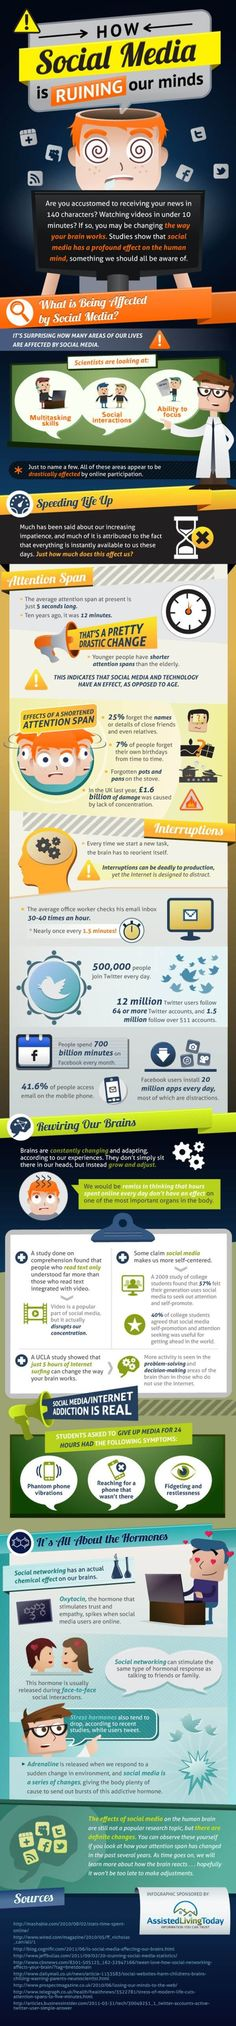 The infographic shows how social media will ruin your life as well as it illustrates the addiction of social media in reality.